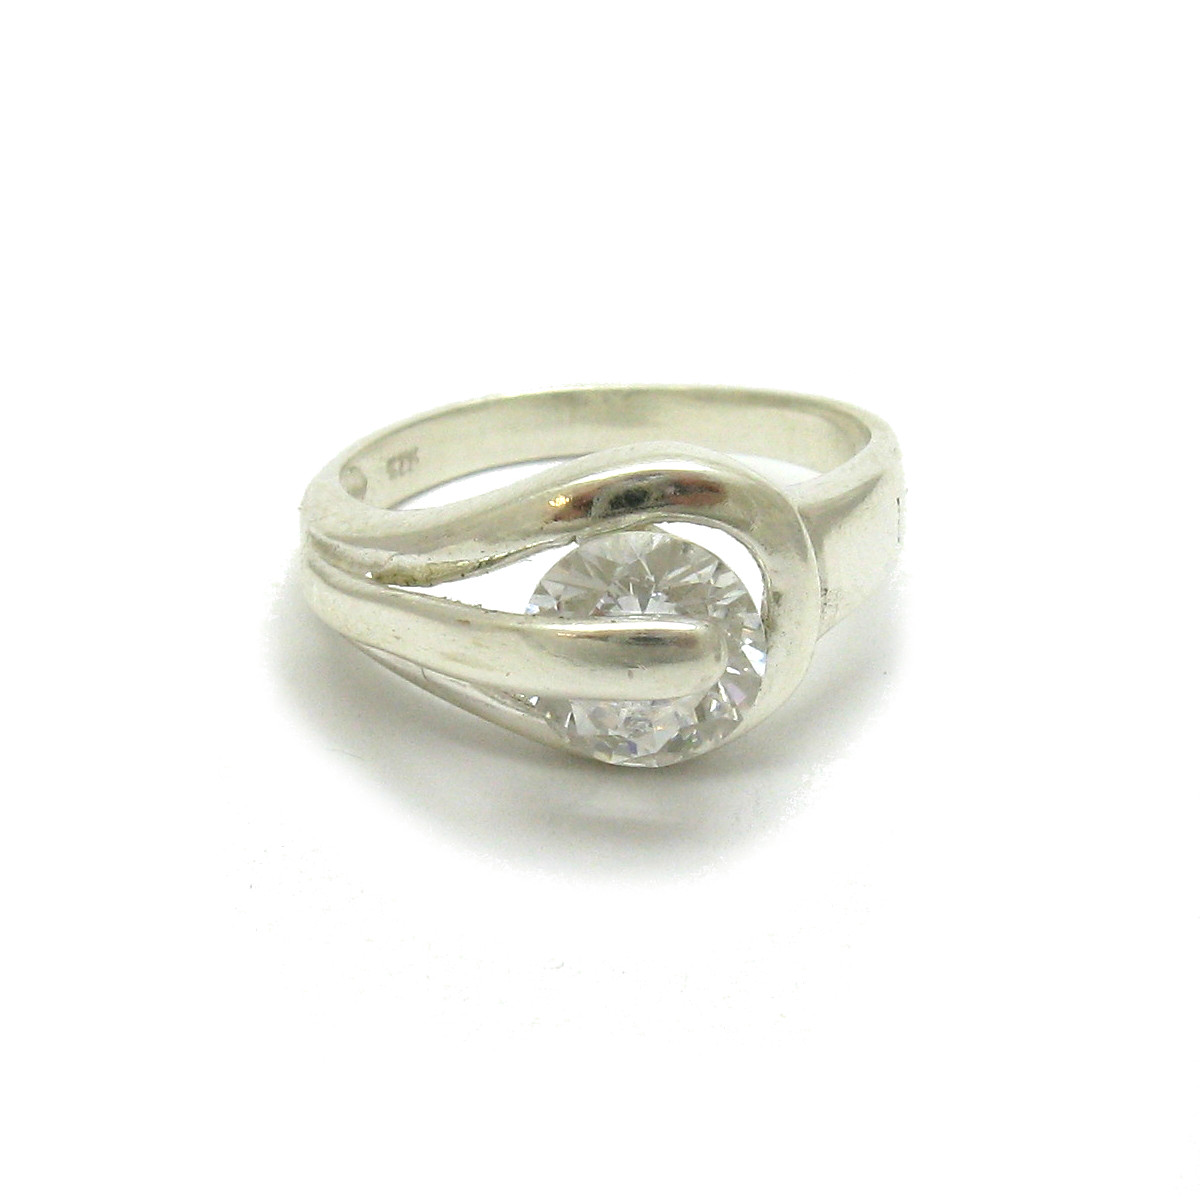 Silver ring - R000209